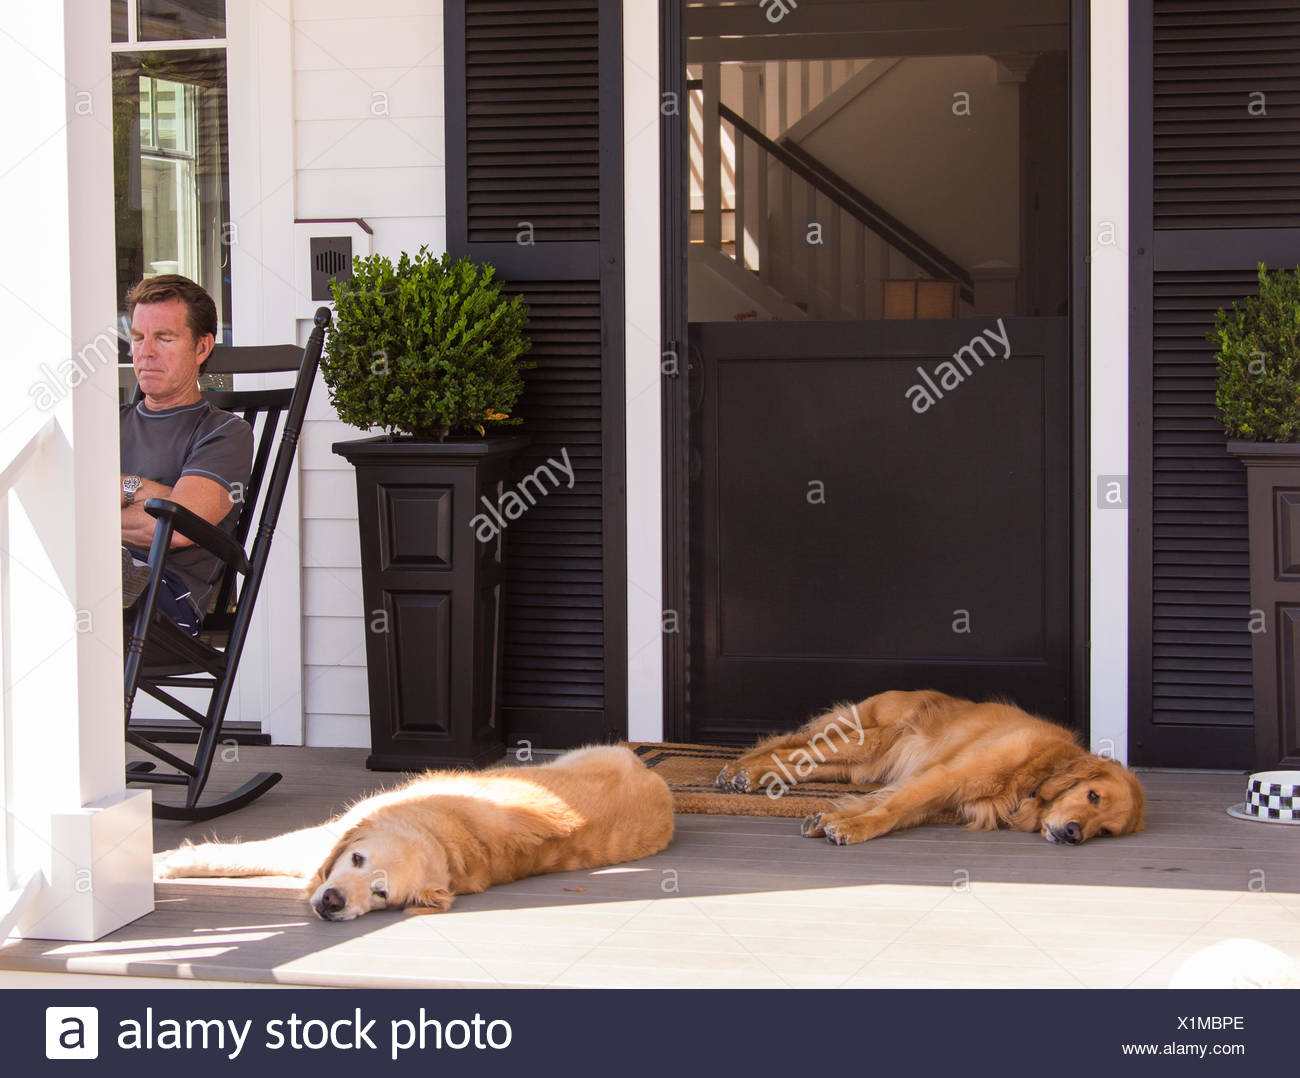 Relaxing on the patio - Stock Image